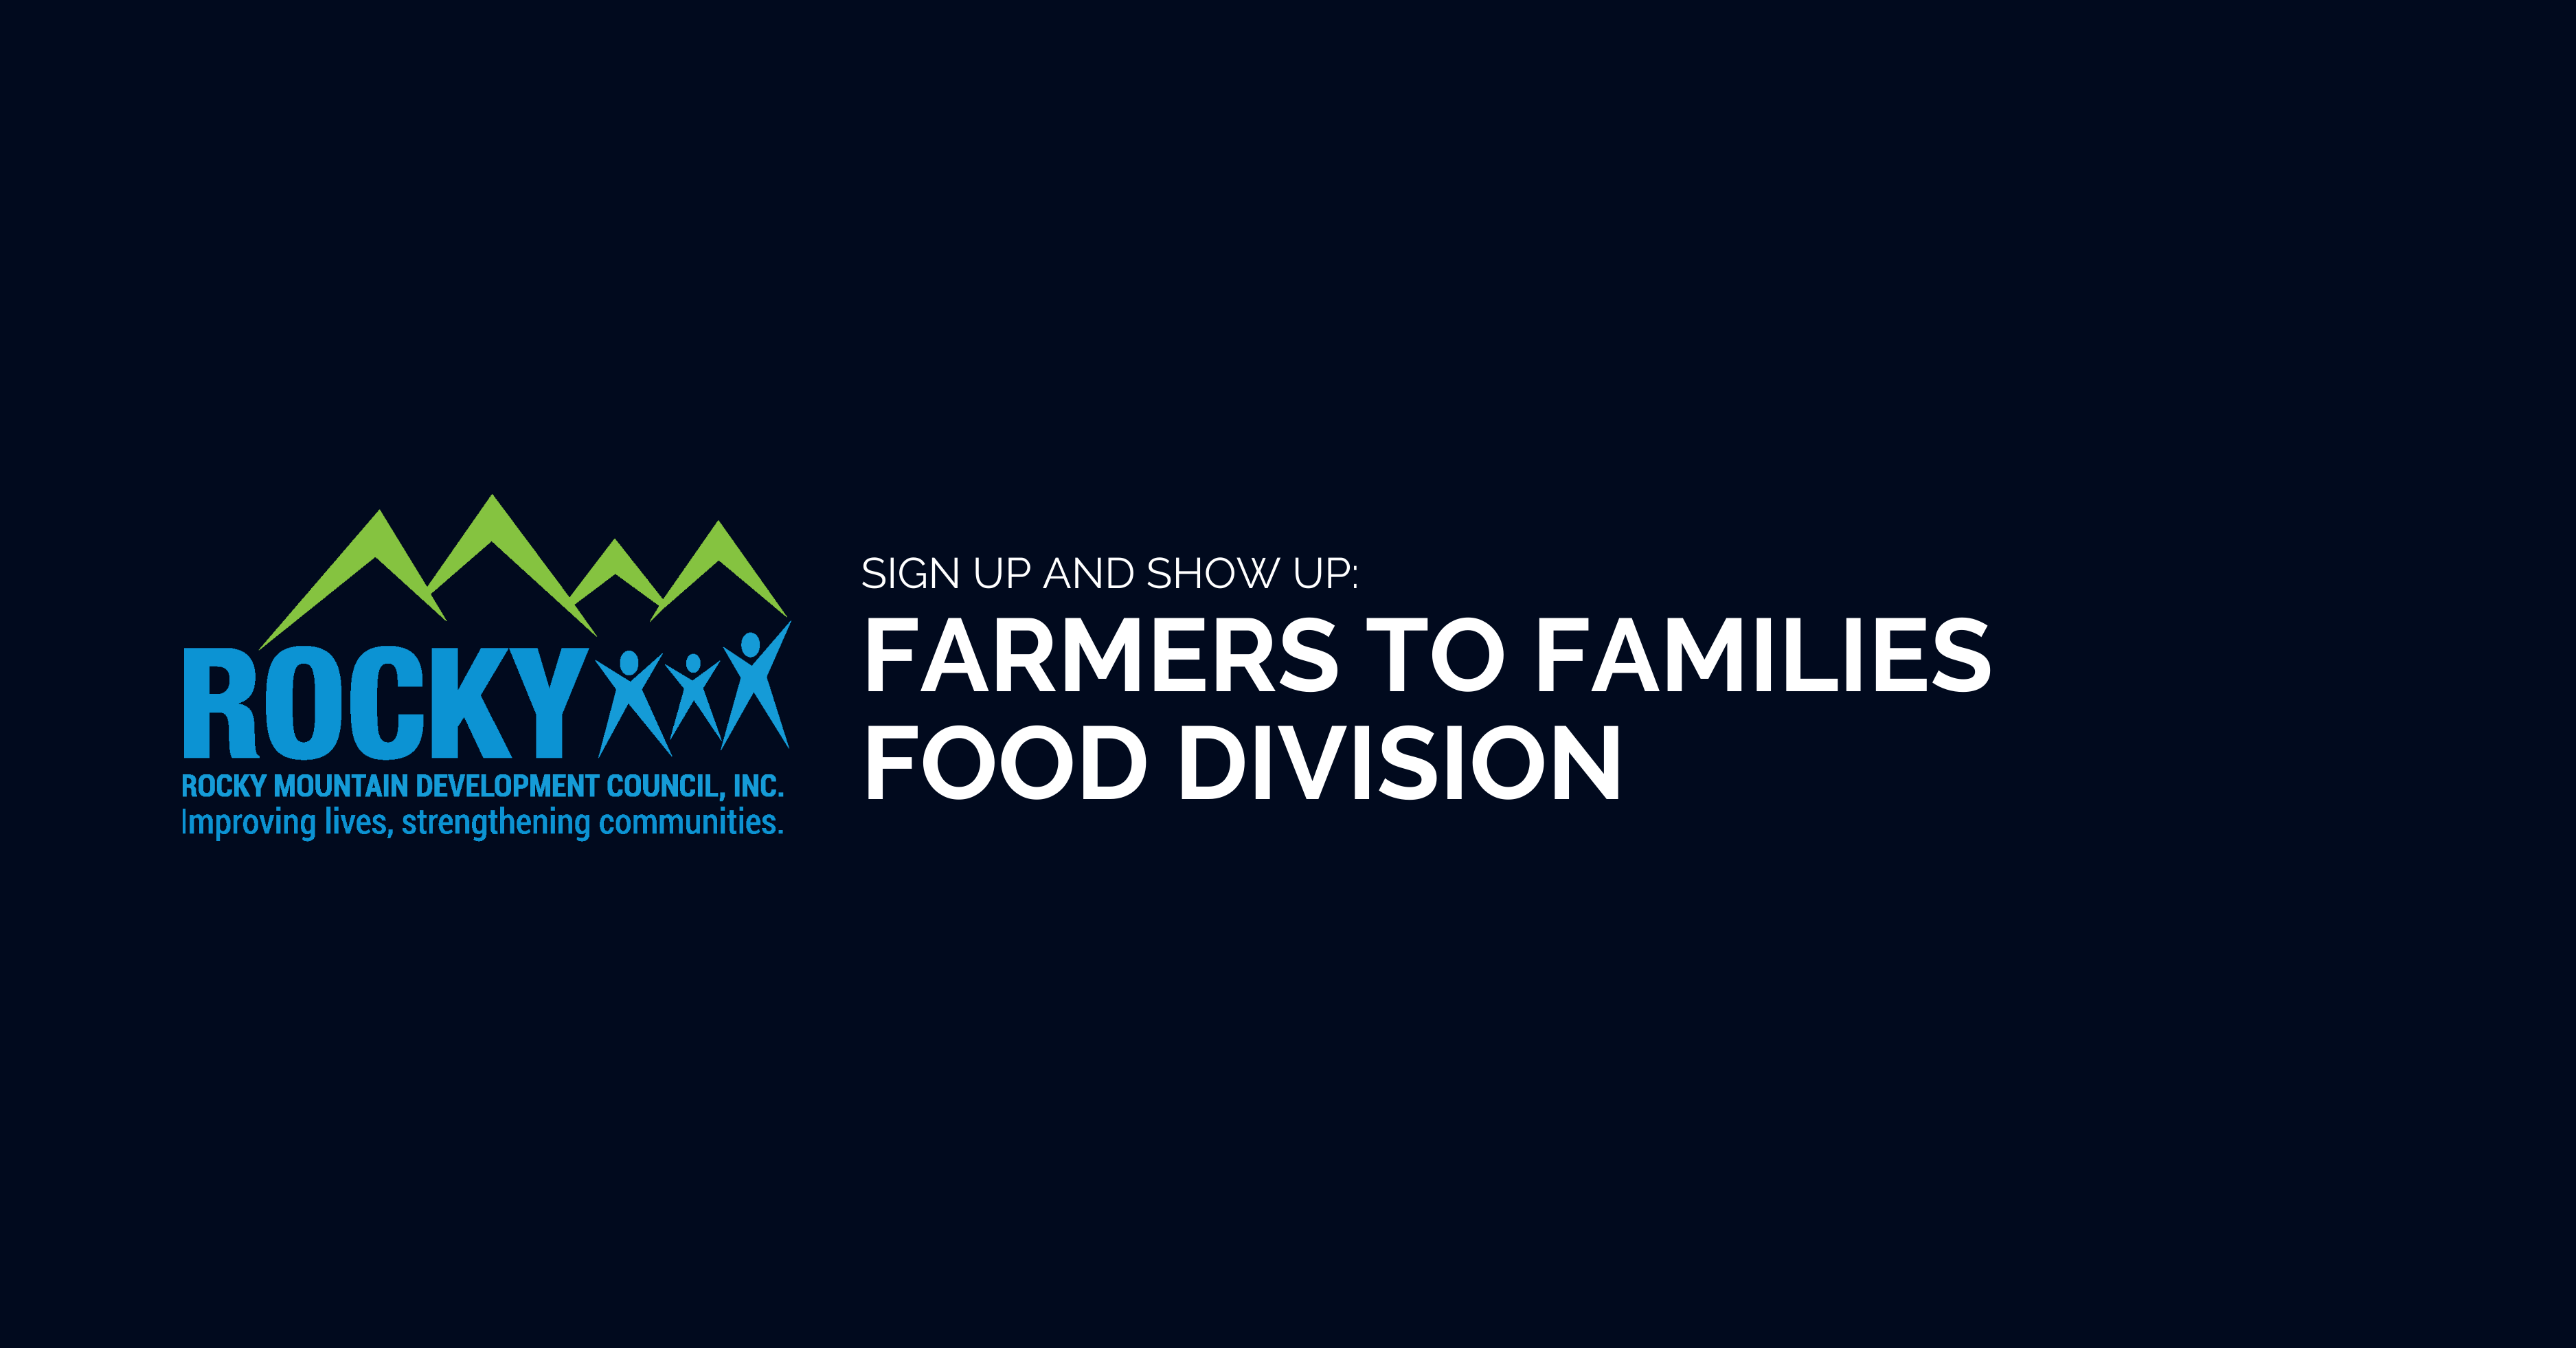 Farmers to Families Food Division